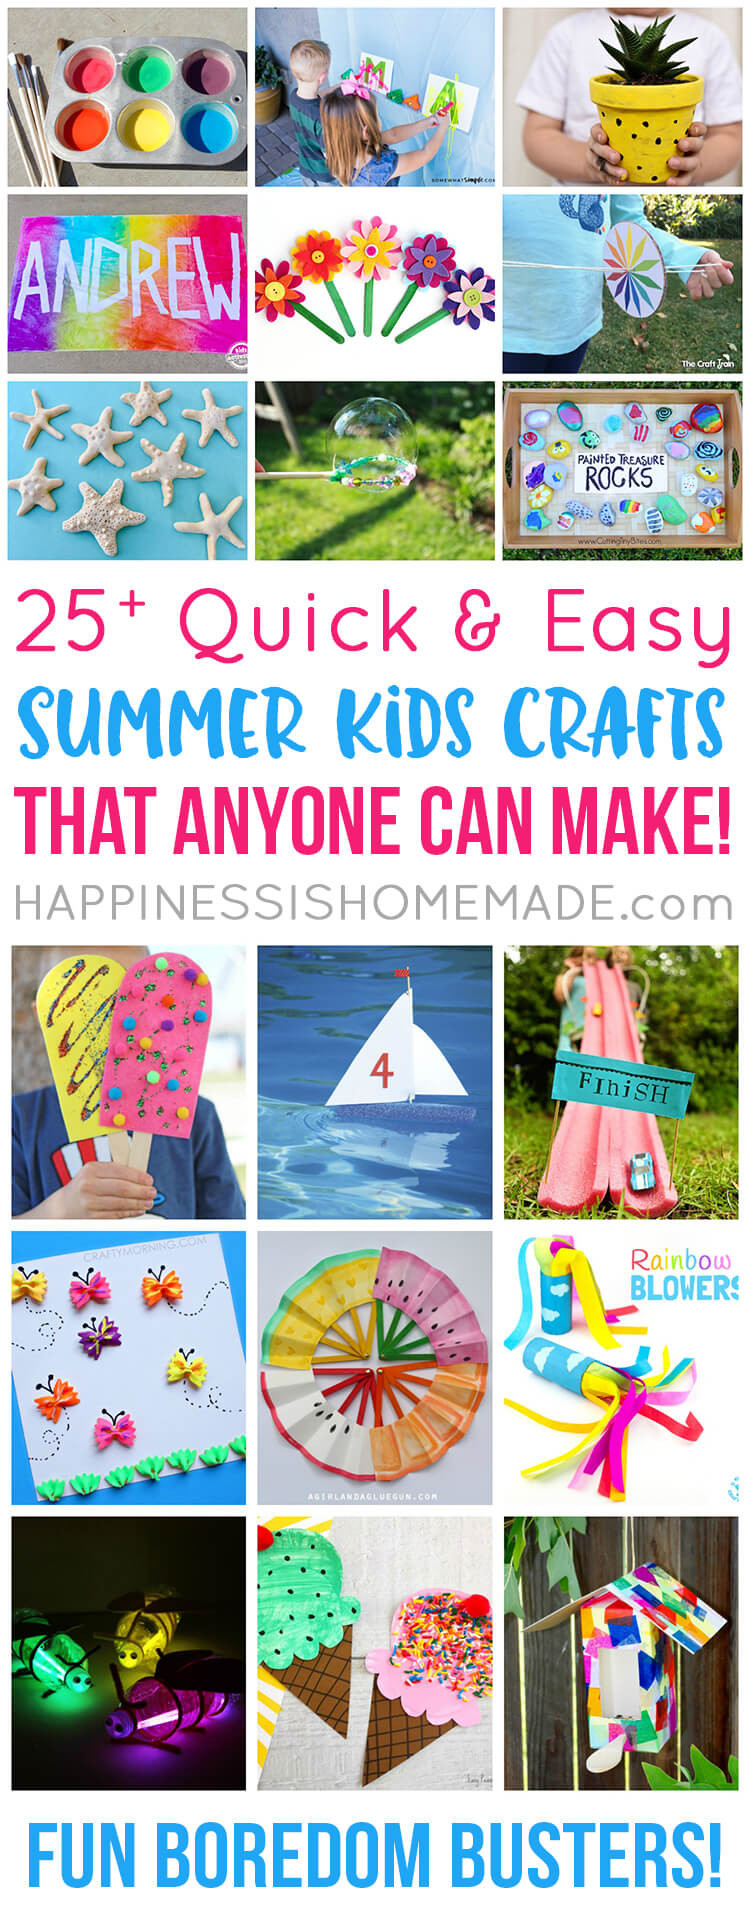 Summer Crafts For Children  Easy Summer Kids Crafts That Anyone Can Make Happiness